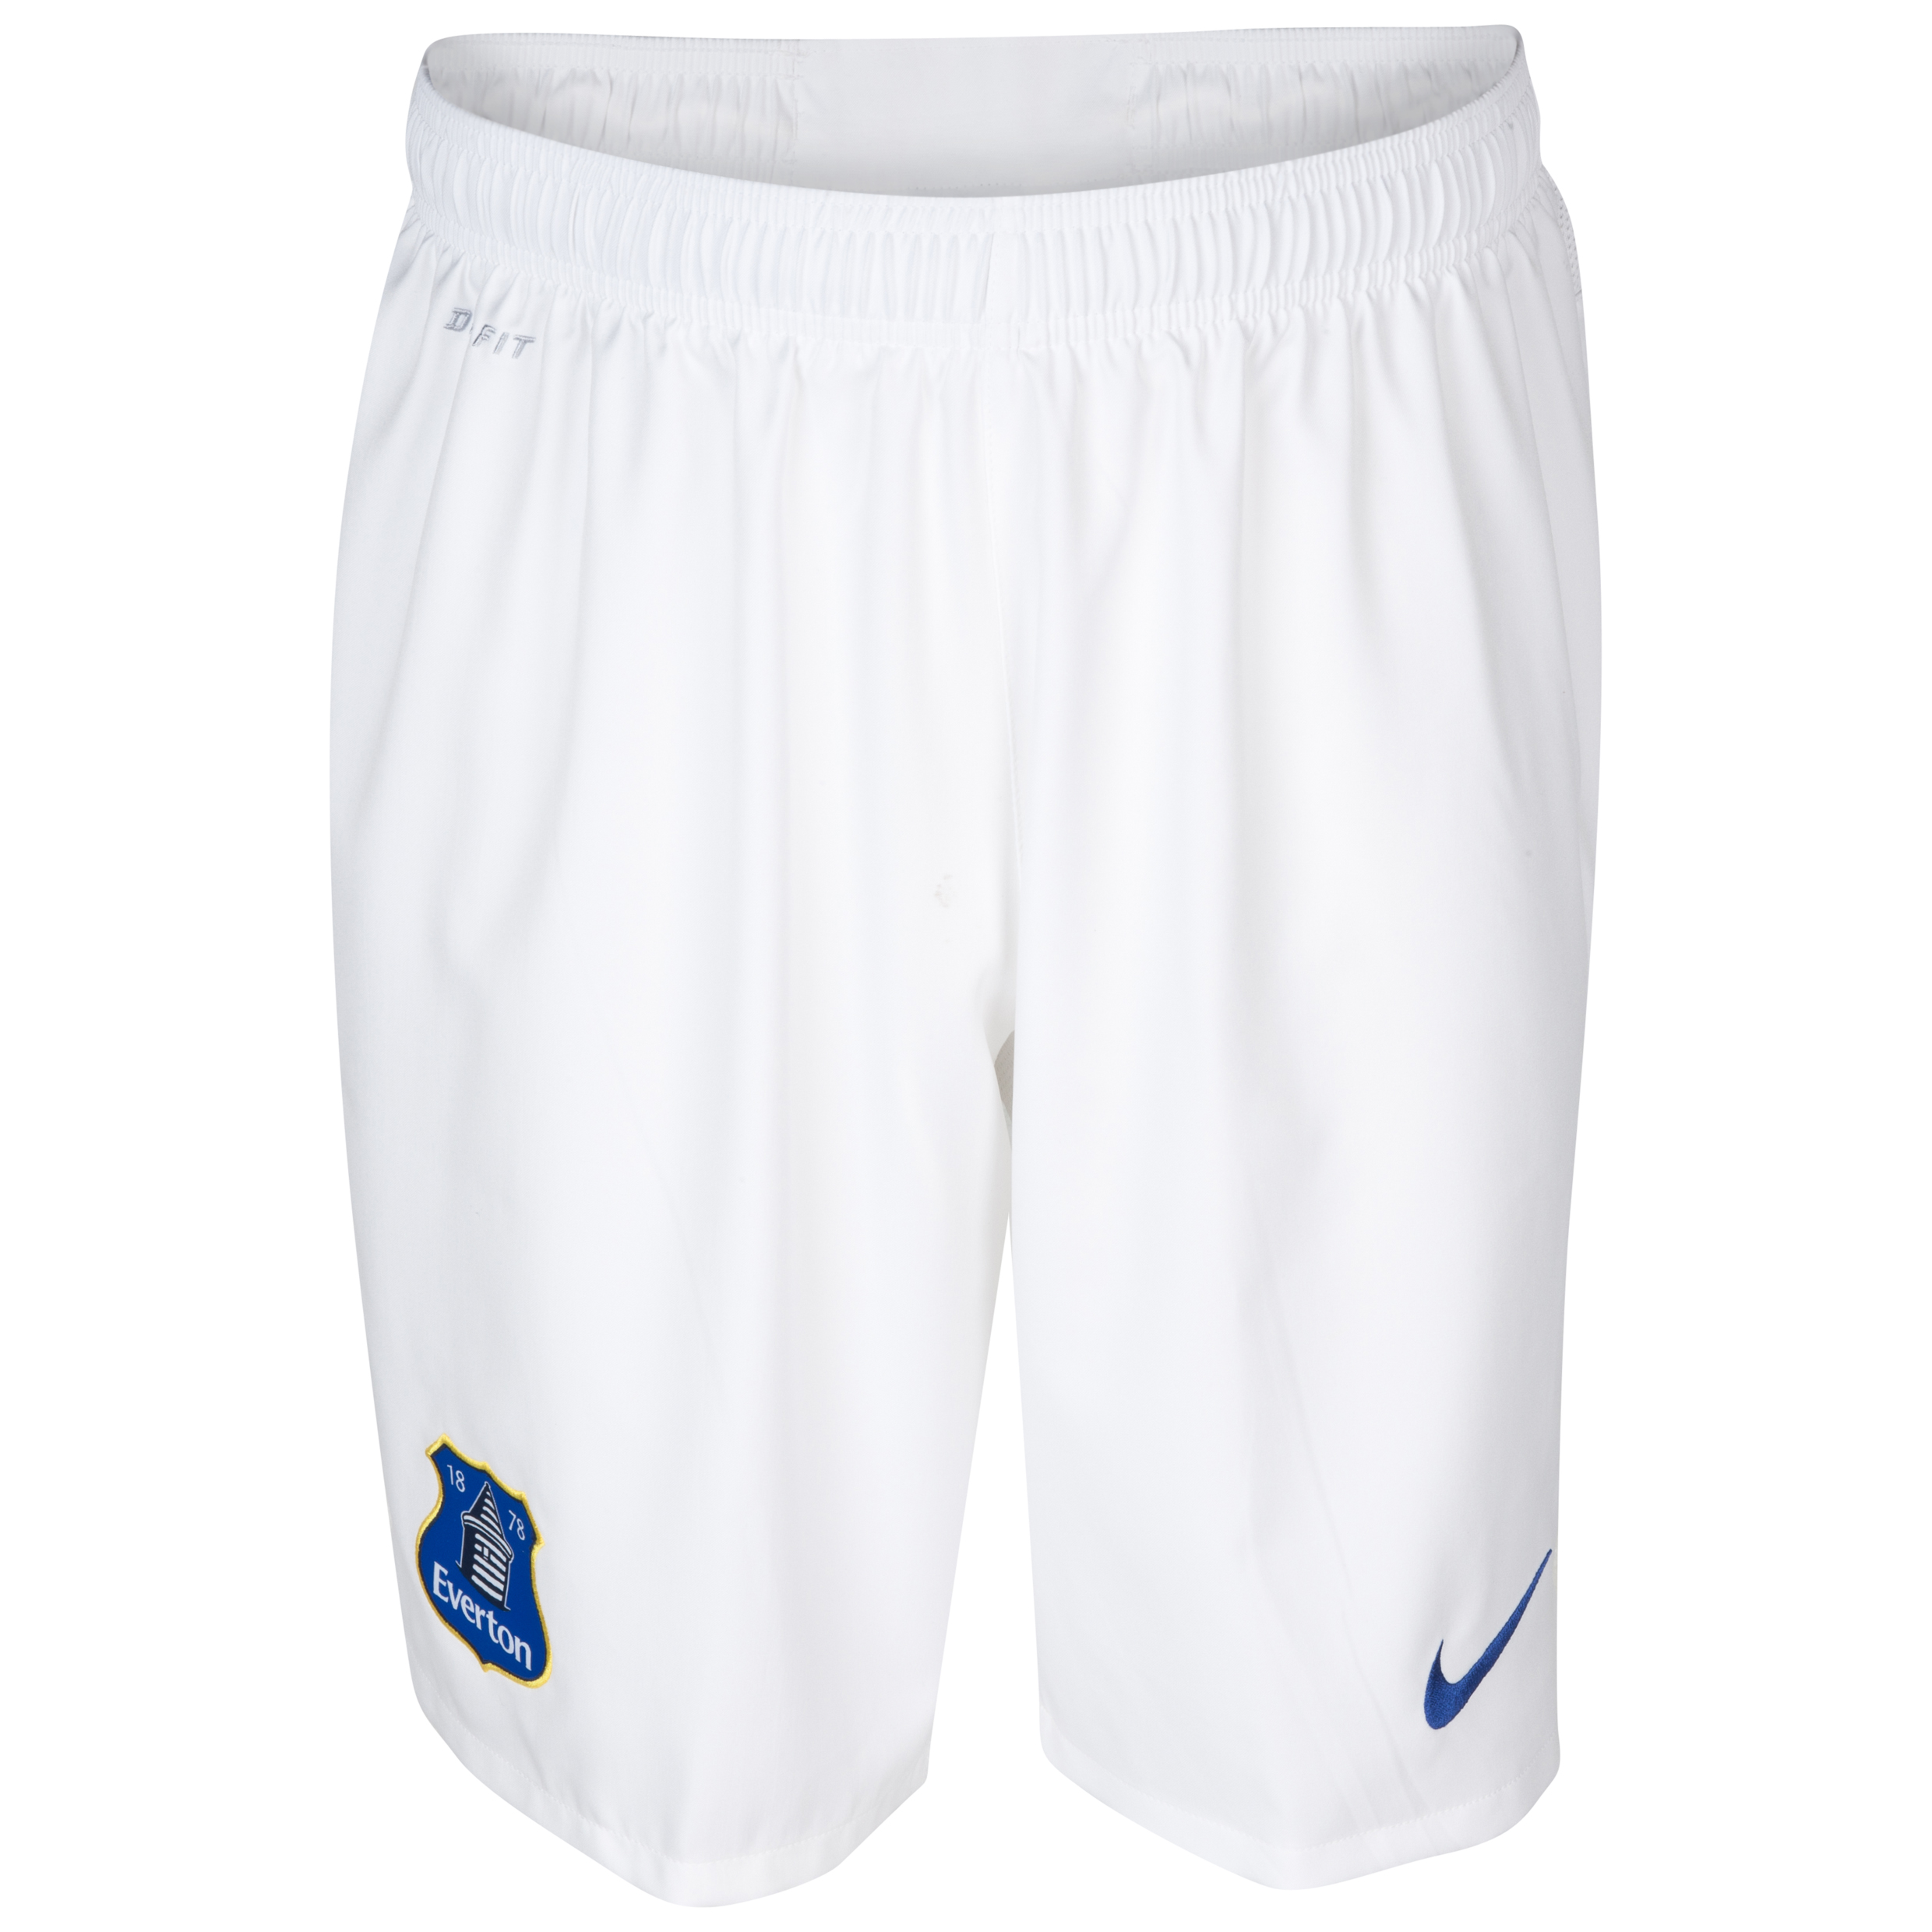 Everton Home Short 2013/14 White